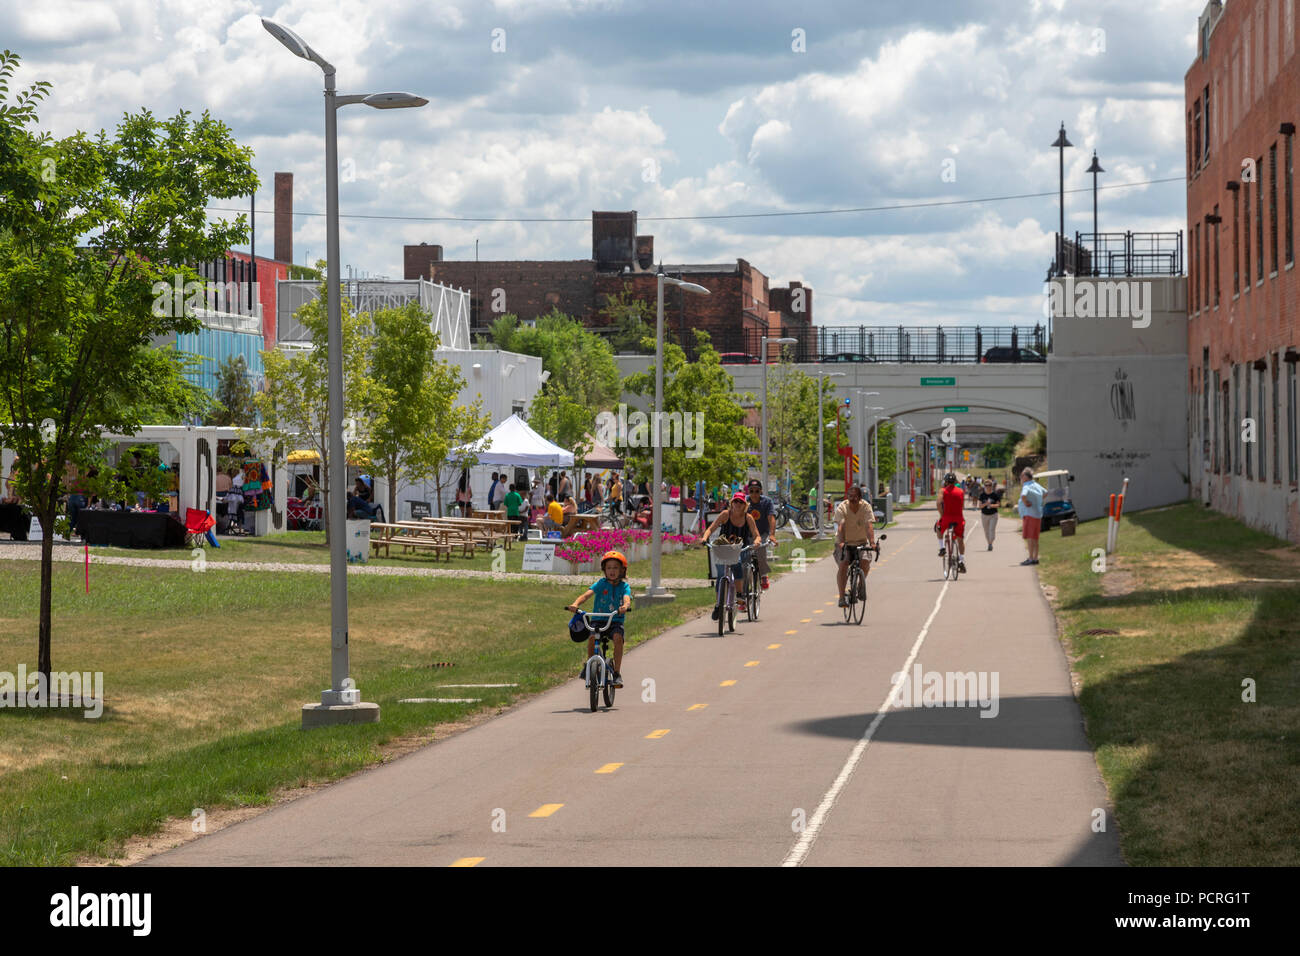 Detroit, Michigan - The Dequindre Cut, a popular walking and bicycling trail near downtown. It was made from an old railroad bed. - Stock Image